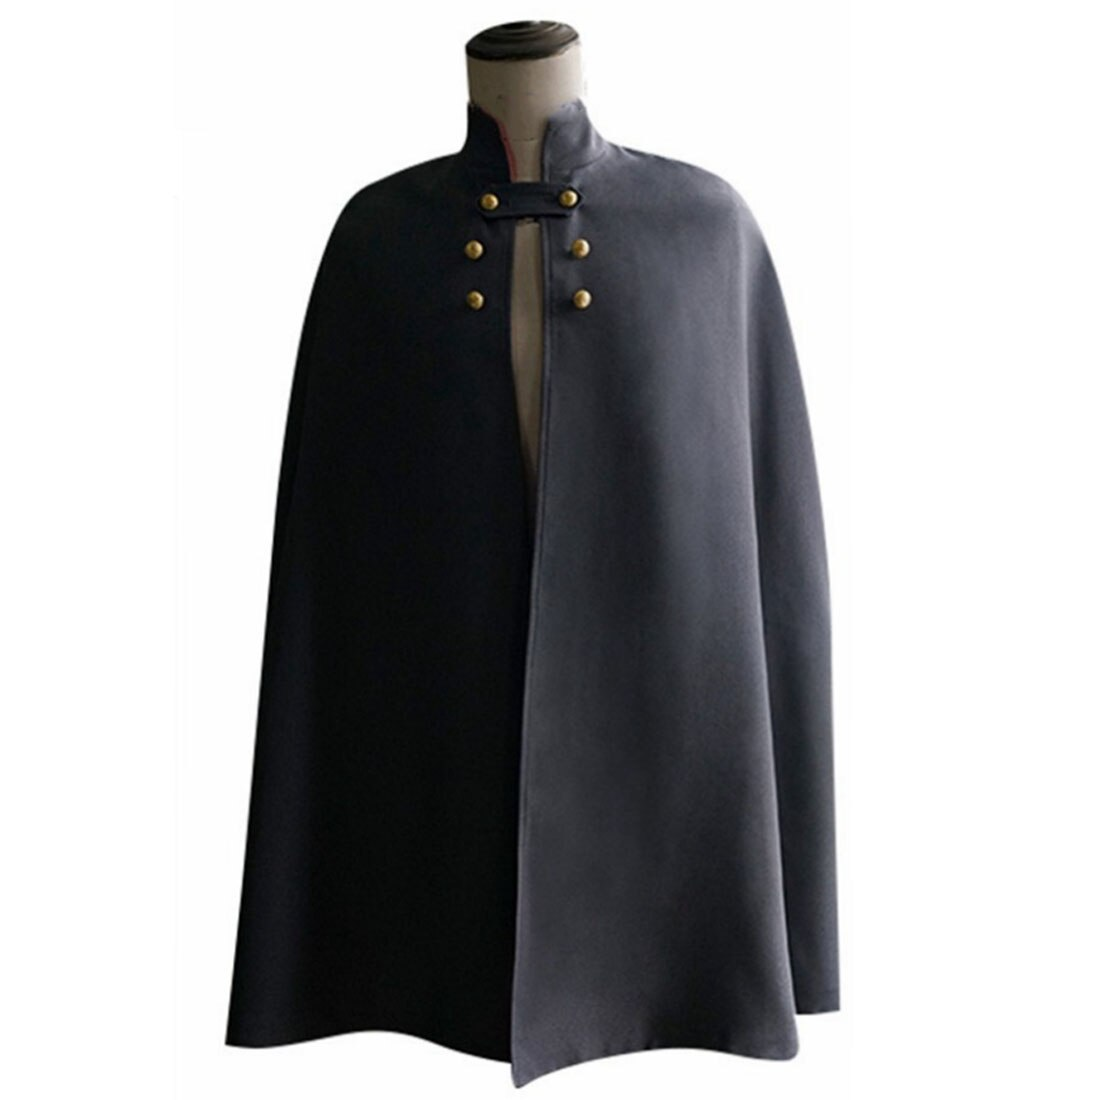 Cape Cosplay-Costume Wirt Made-Over-The-Garden-Wall Mantle